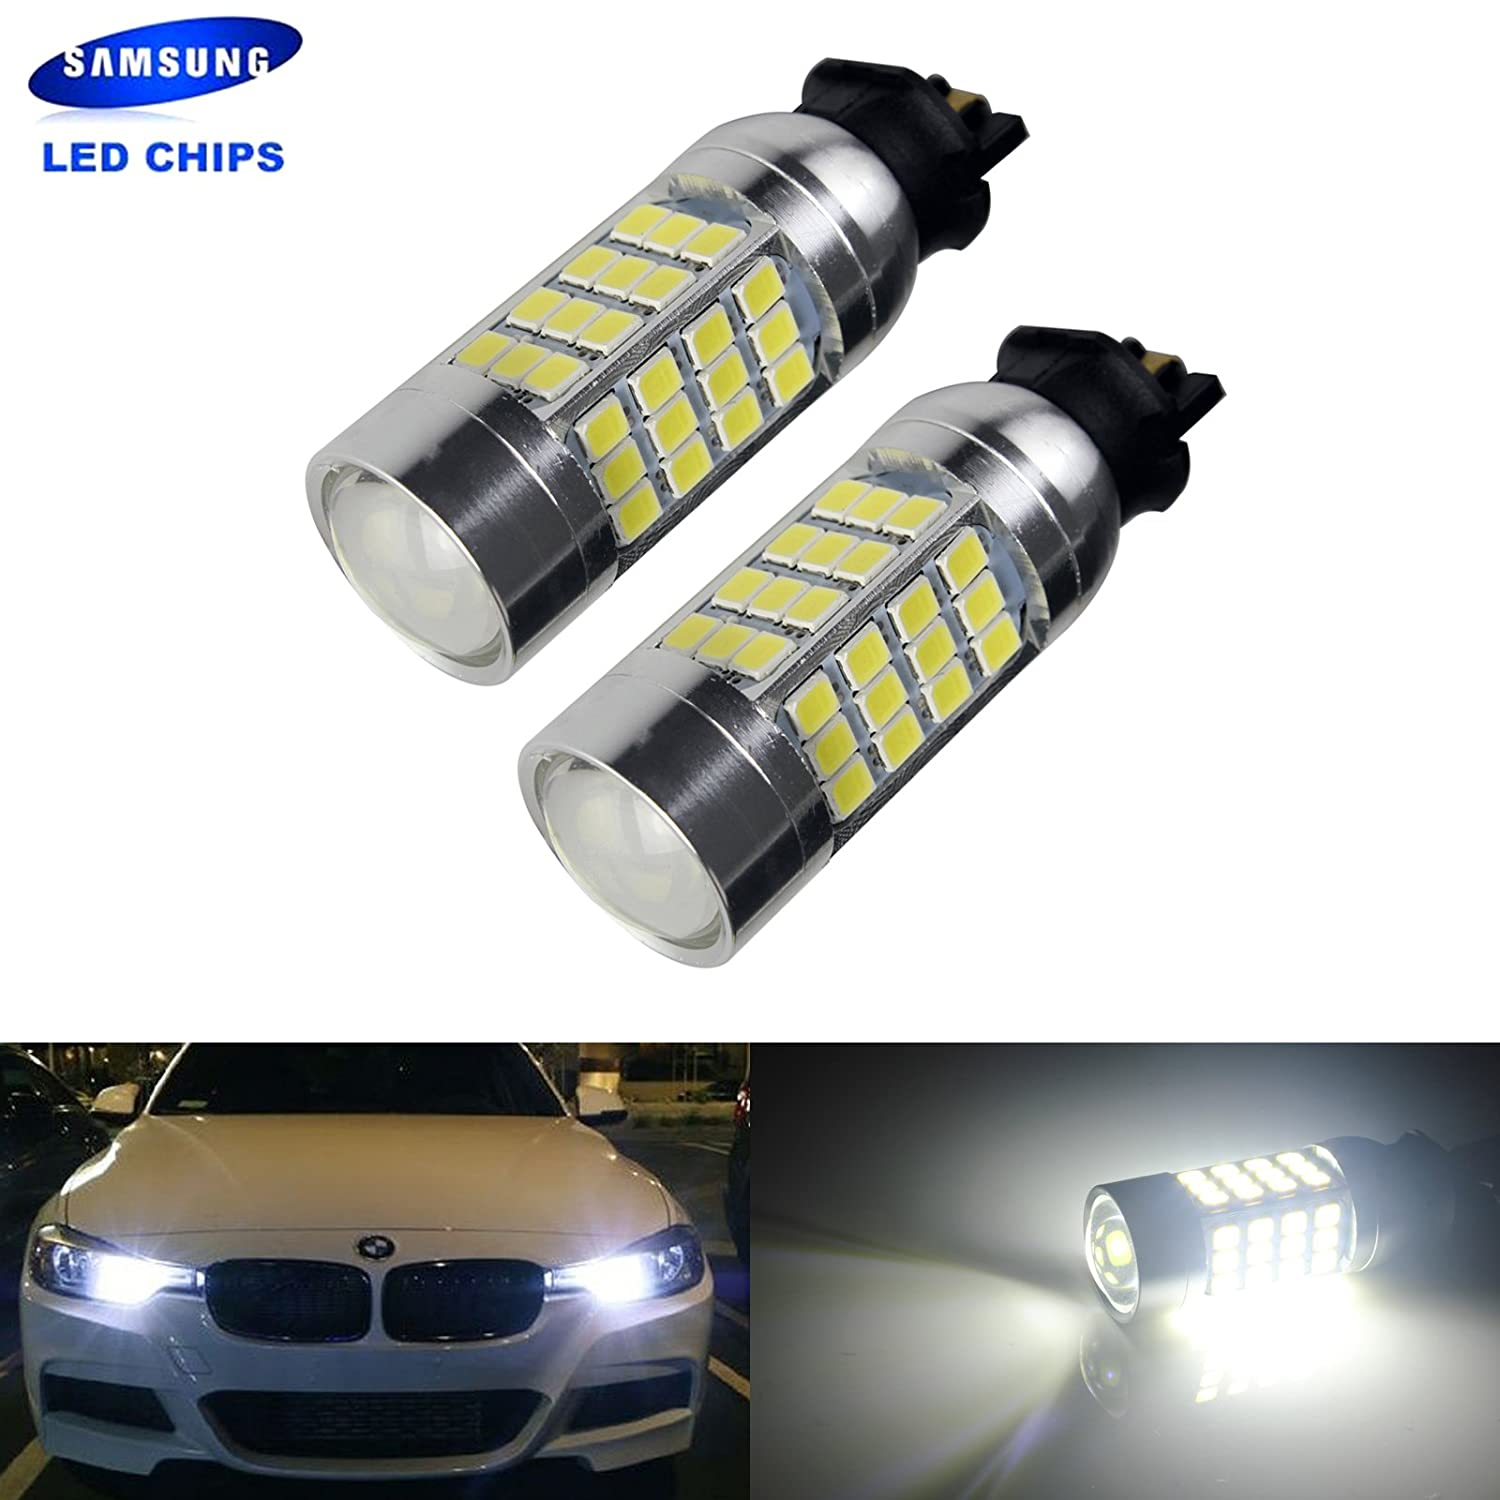 ANG Rong 2 x PW24 W bombilla Samsung 45 W LED DRL luz diurna: Amazon.es: Coche y moto